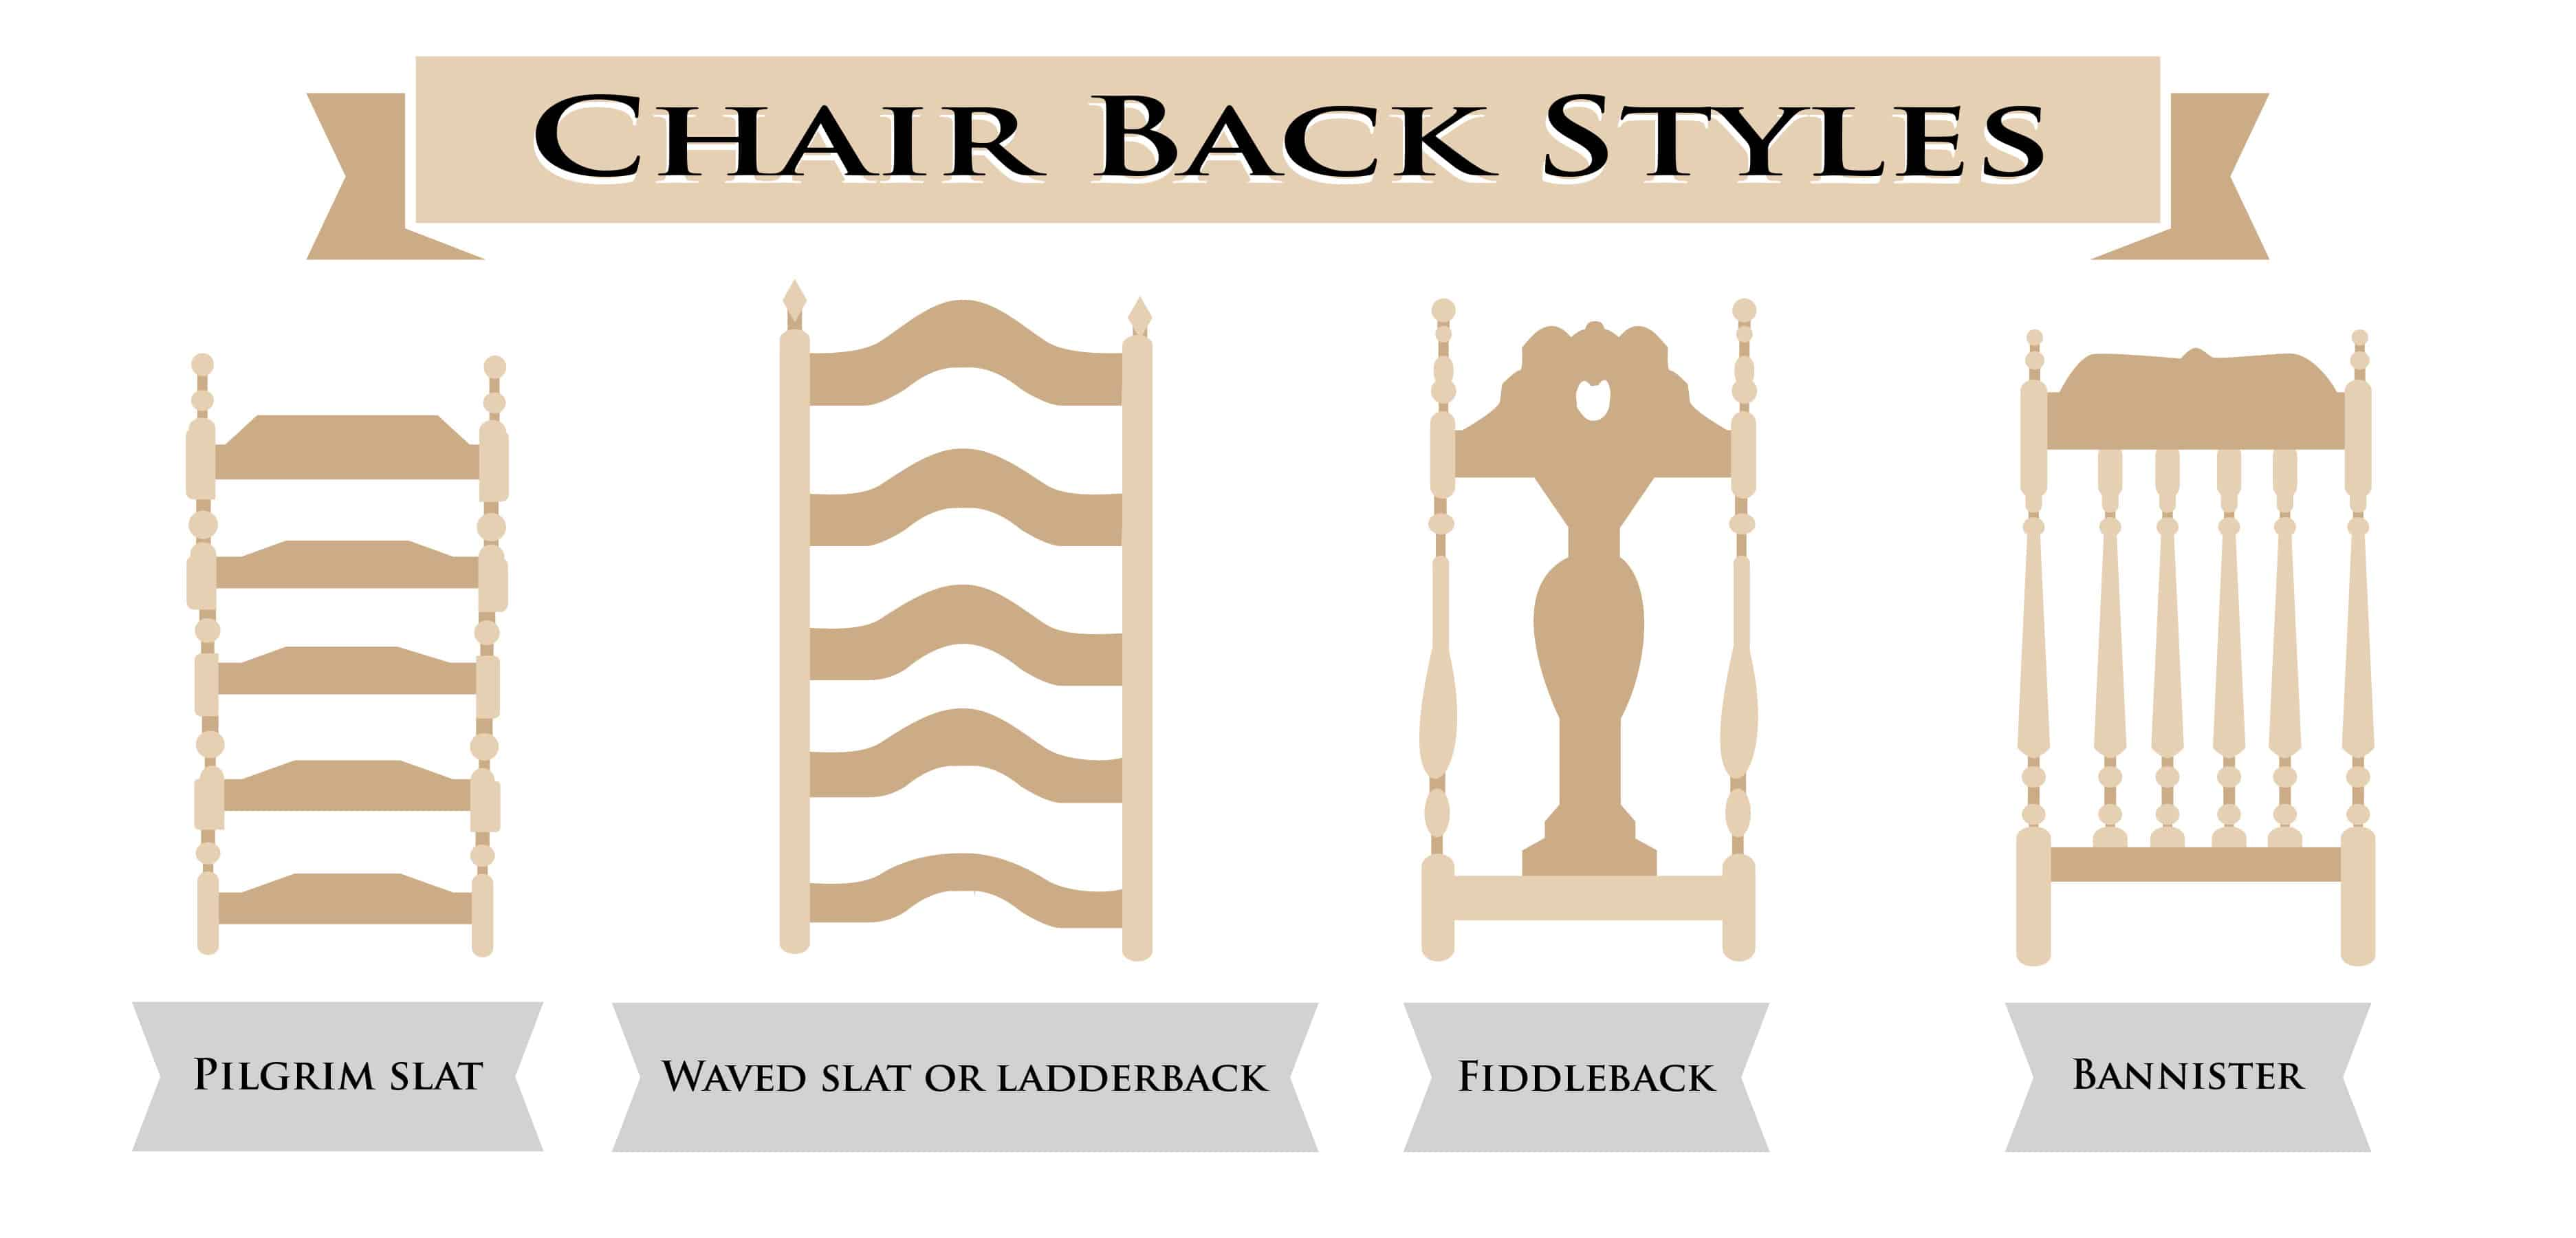 The Ultimate Chair Back Styles Guide 24 Illustrated